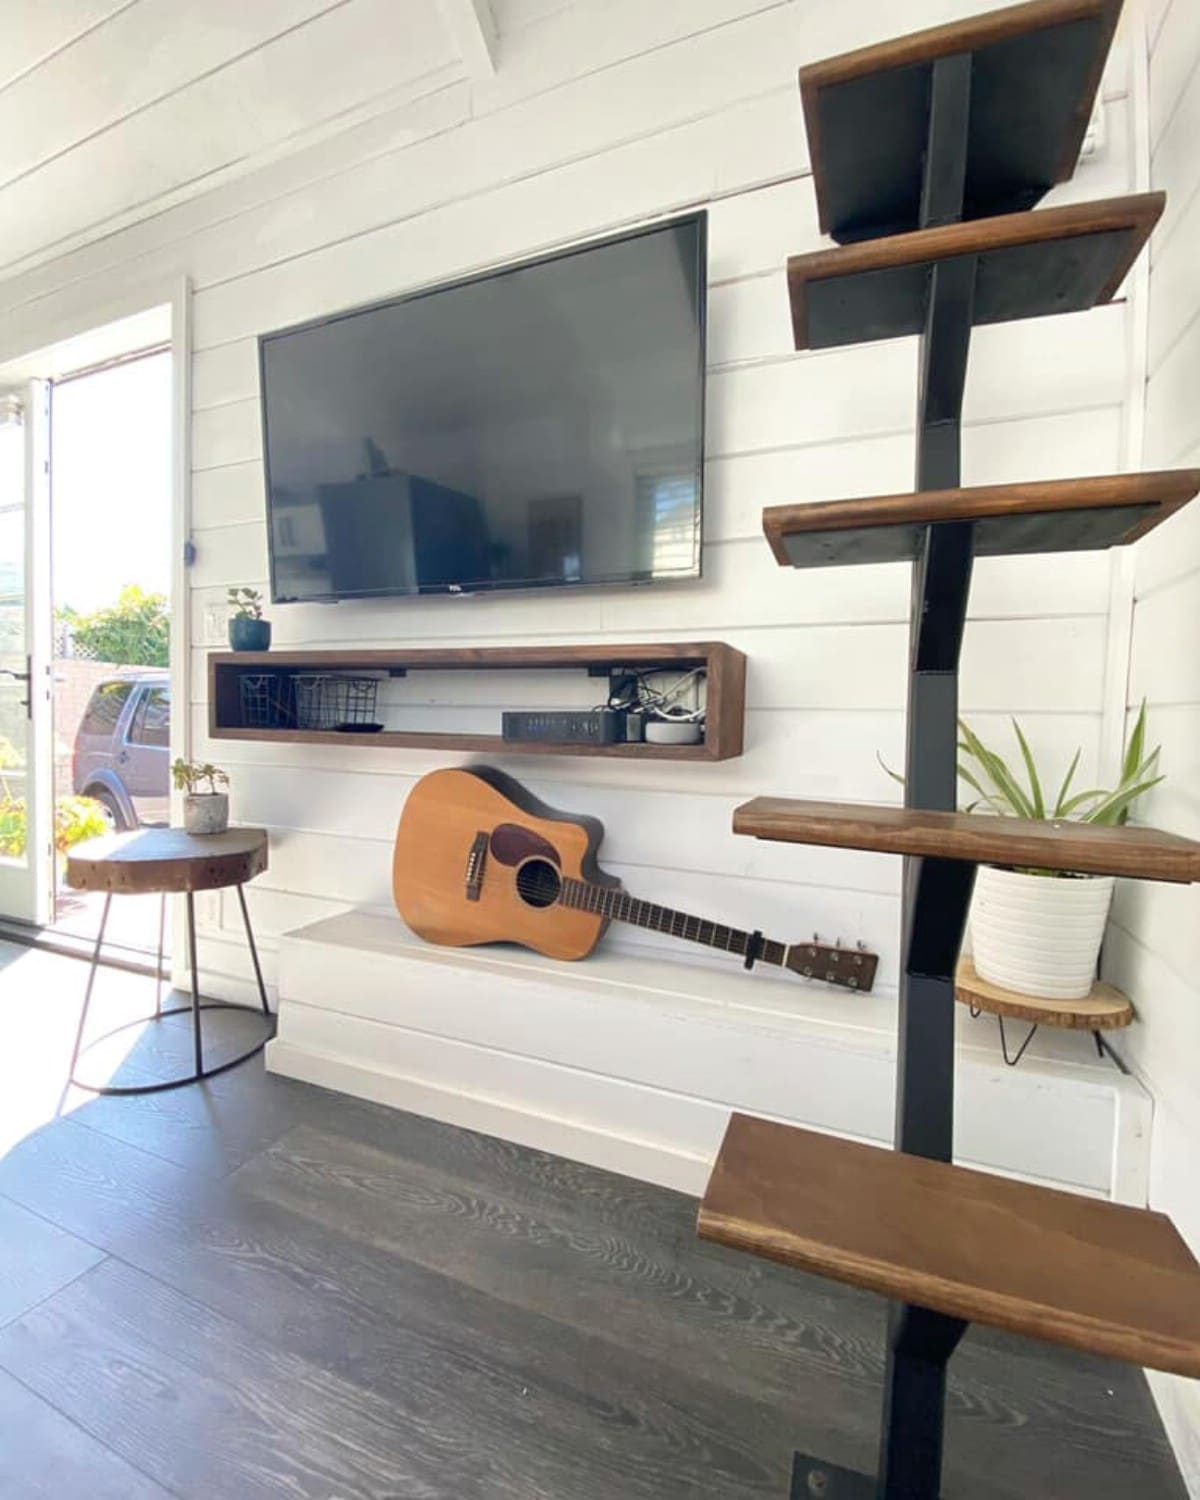 Wall mounted TV by hanging shelf